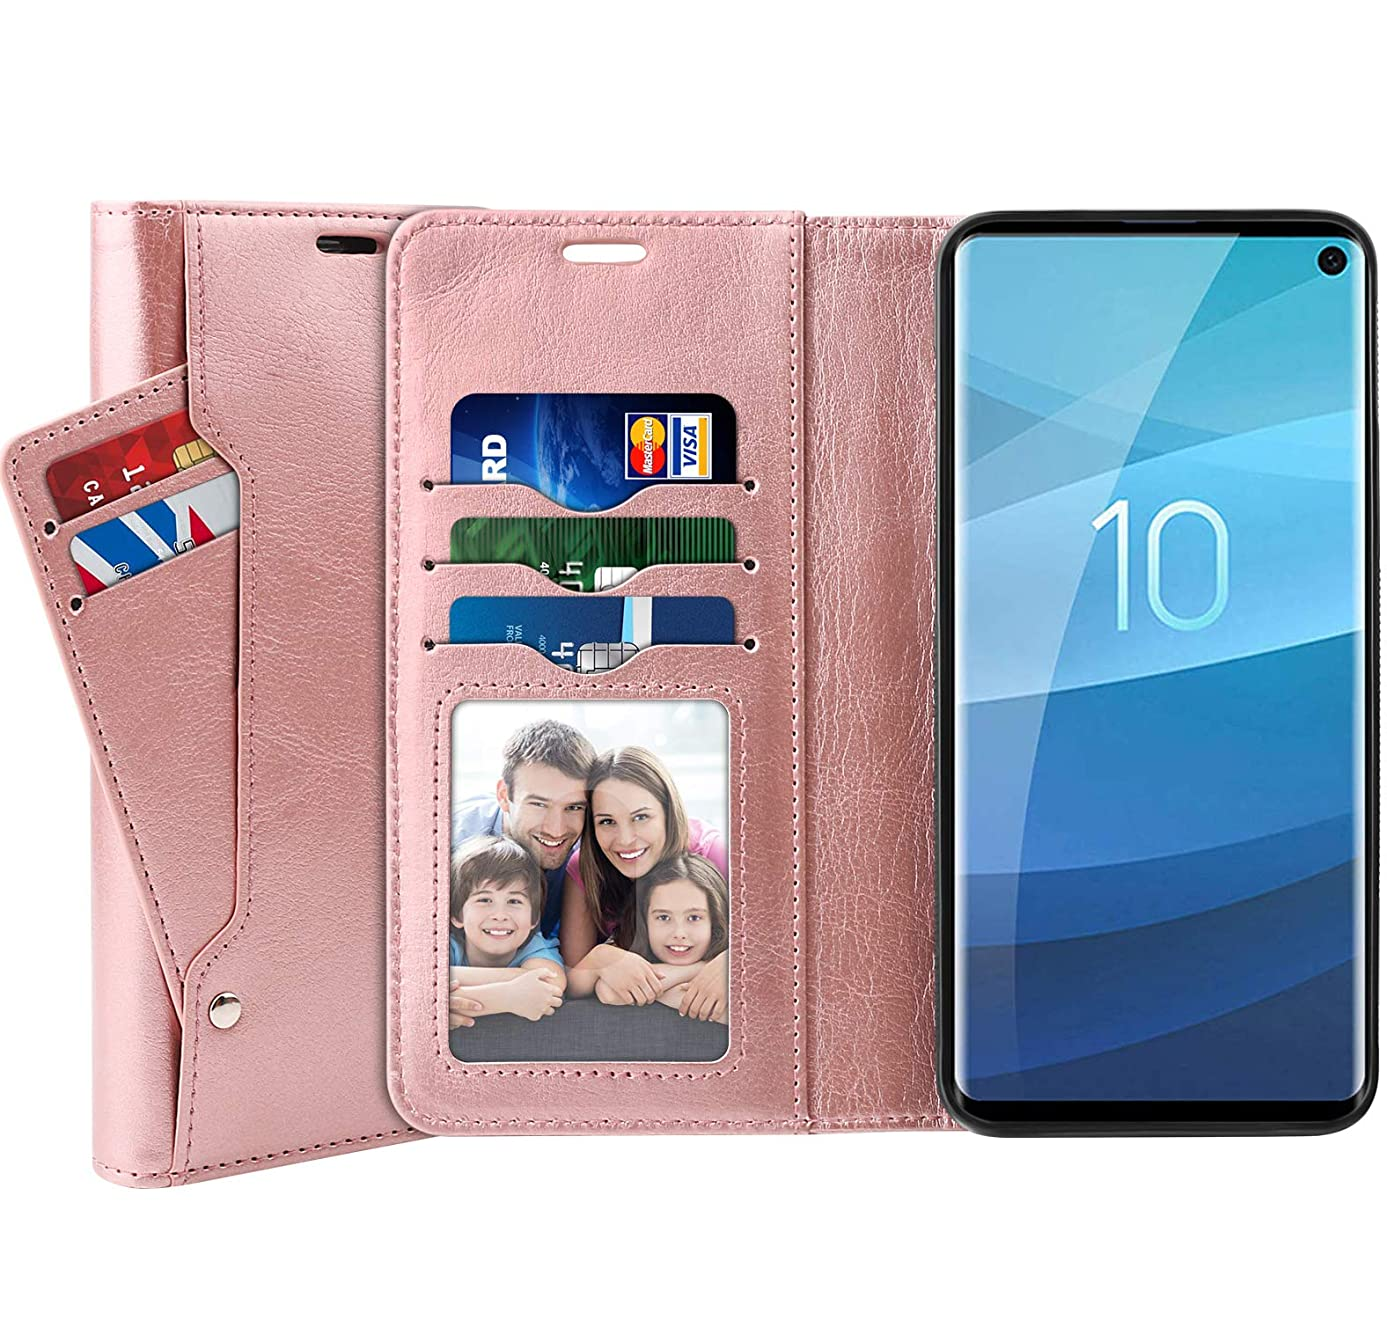 SUPTMAX Leather Wallet Case for Samsung Galaxy S10 [PU Leather + TPU Base] Galaxy S10 Flip Case [5 Slots] Samsung Galaxy S10 Wallet Case Kickstand (Rose Gold)